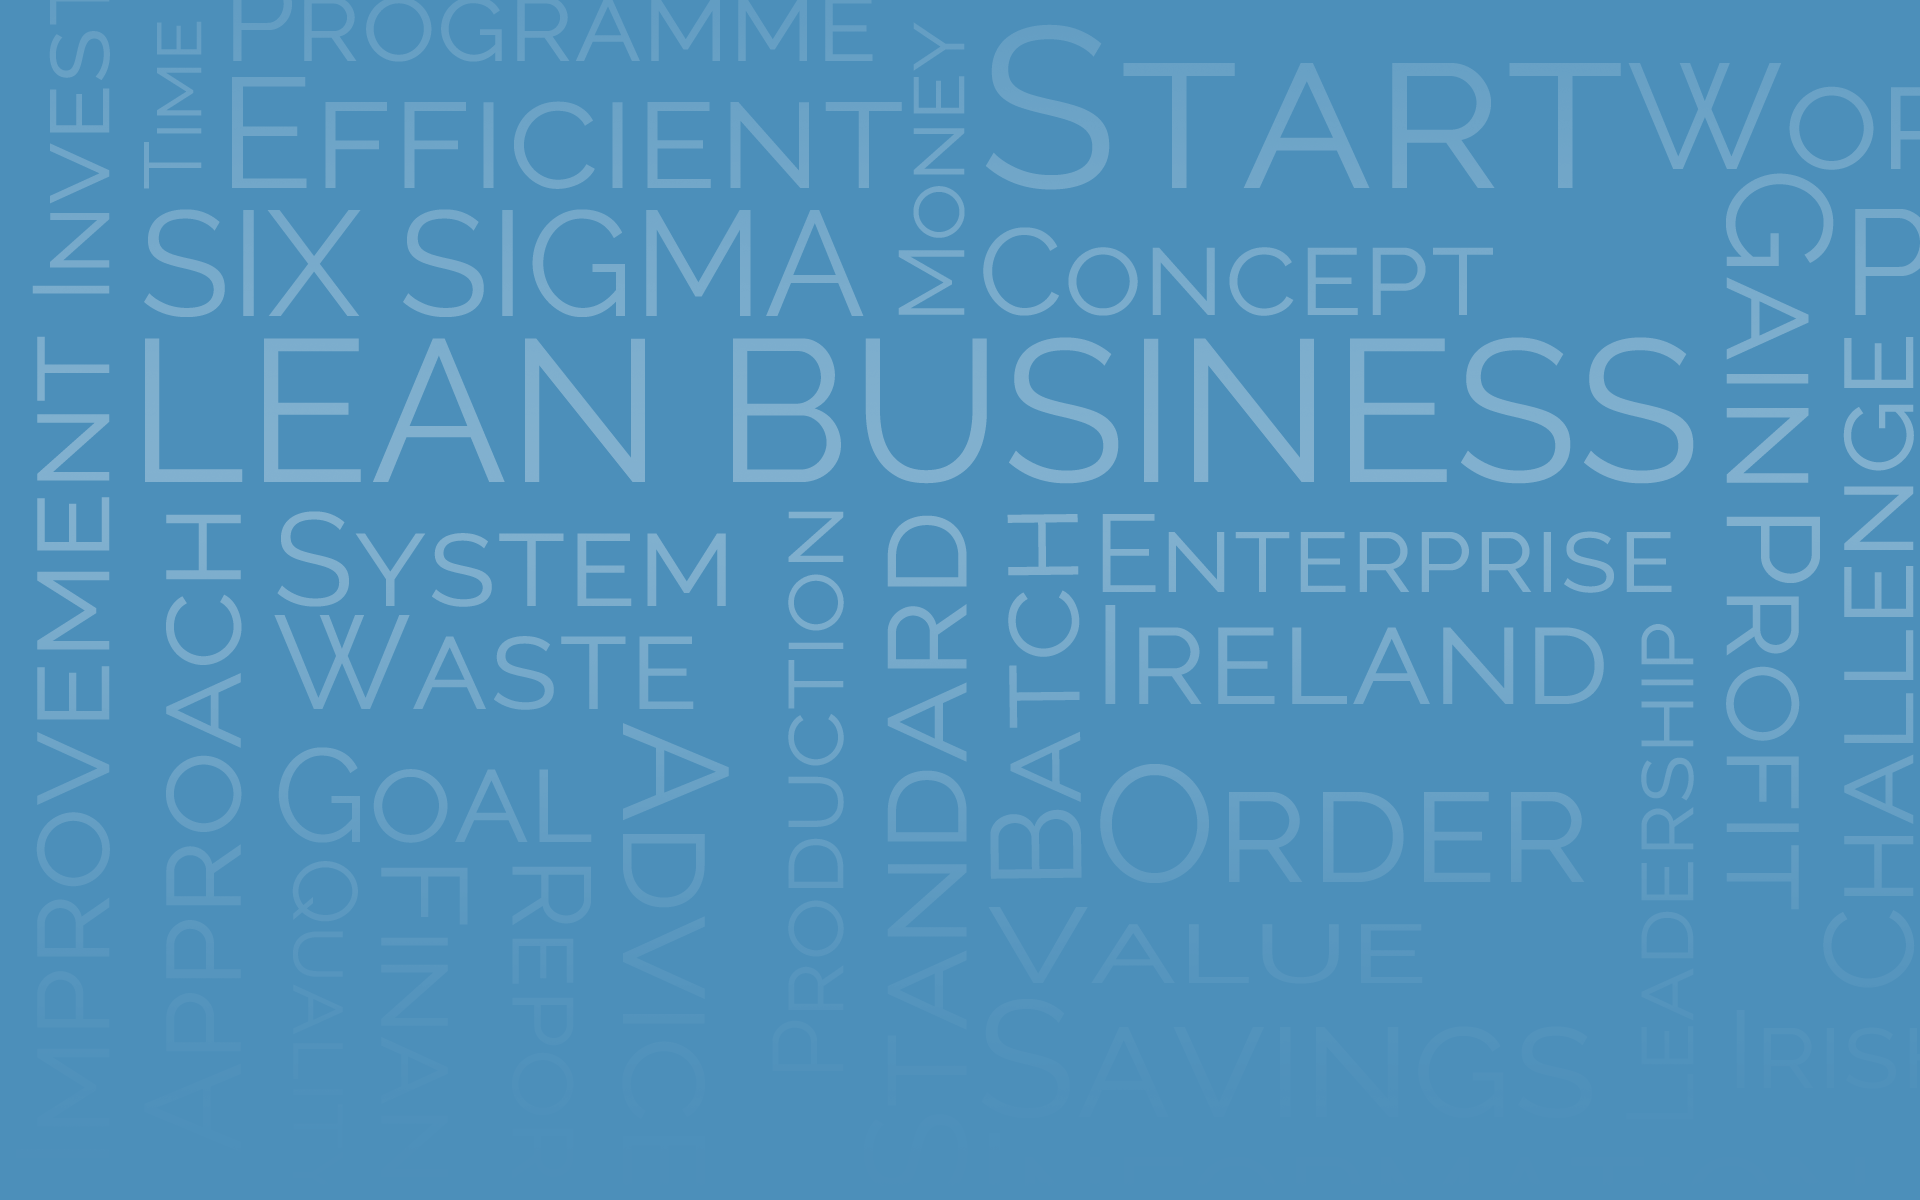 Management Works Lean Business Programme  – Delivered by LBSPartners